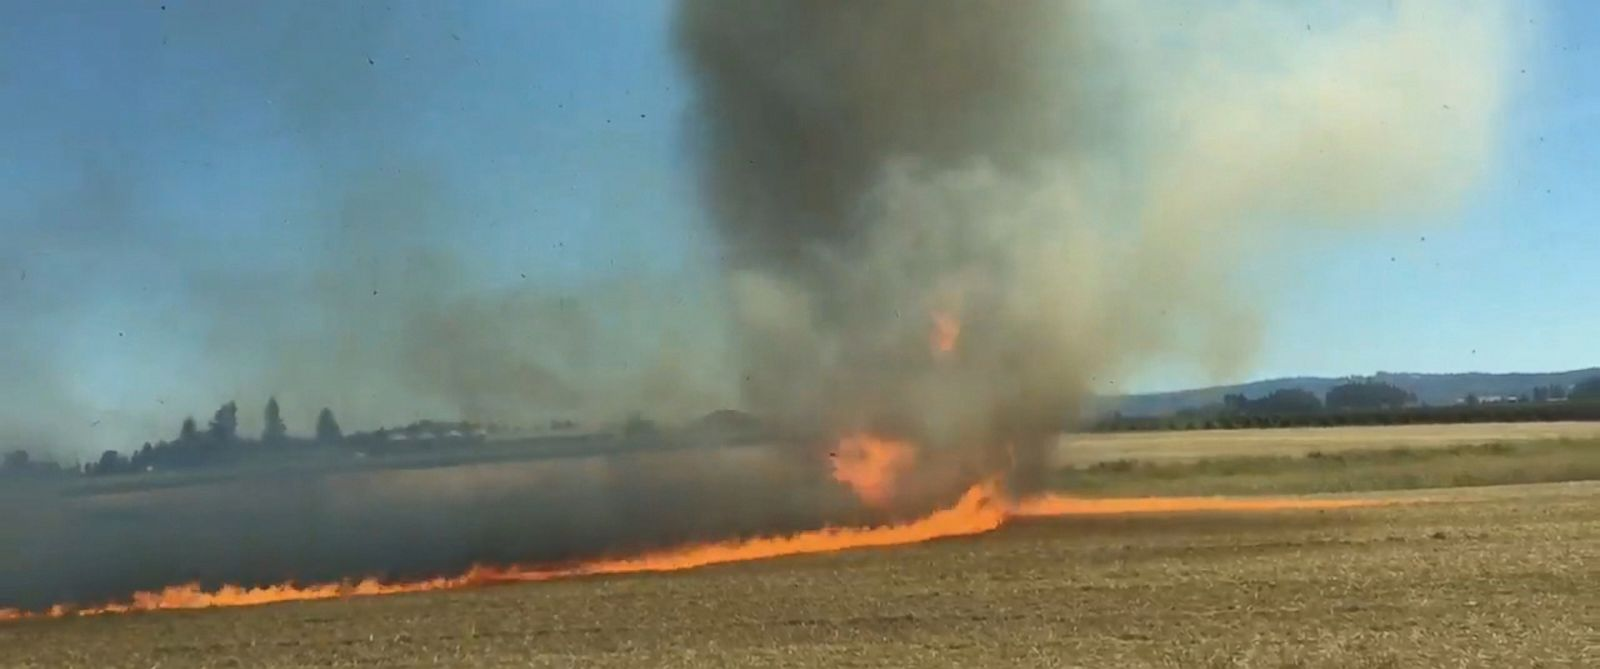 PHOTO: The Cornelius Fire Department in Oregon captured a firenado after a field fire charred nearly seven acres of land about 20 miles west of Portland.